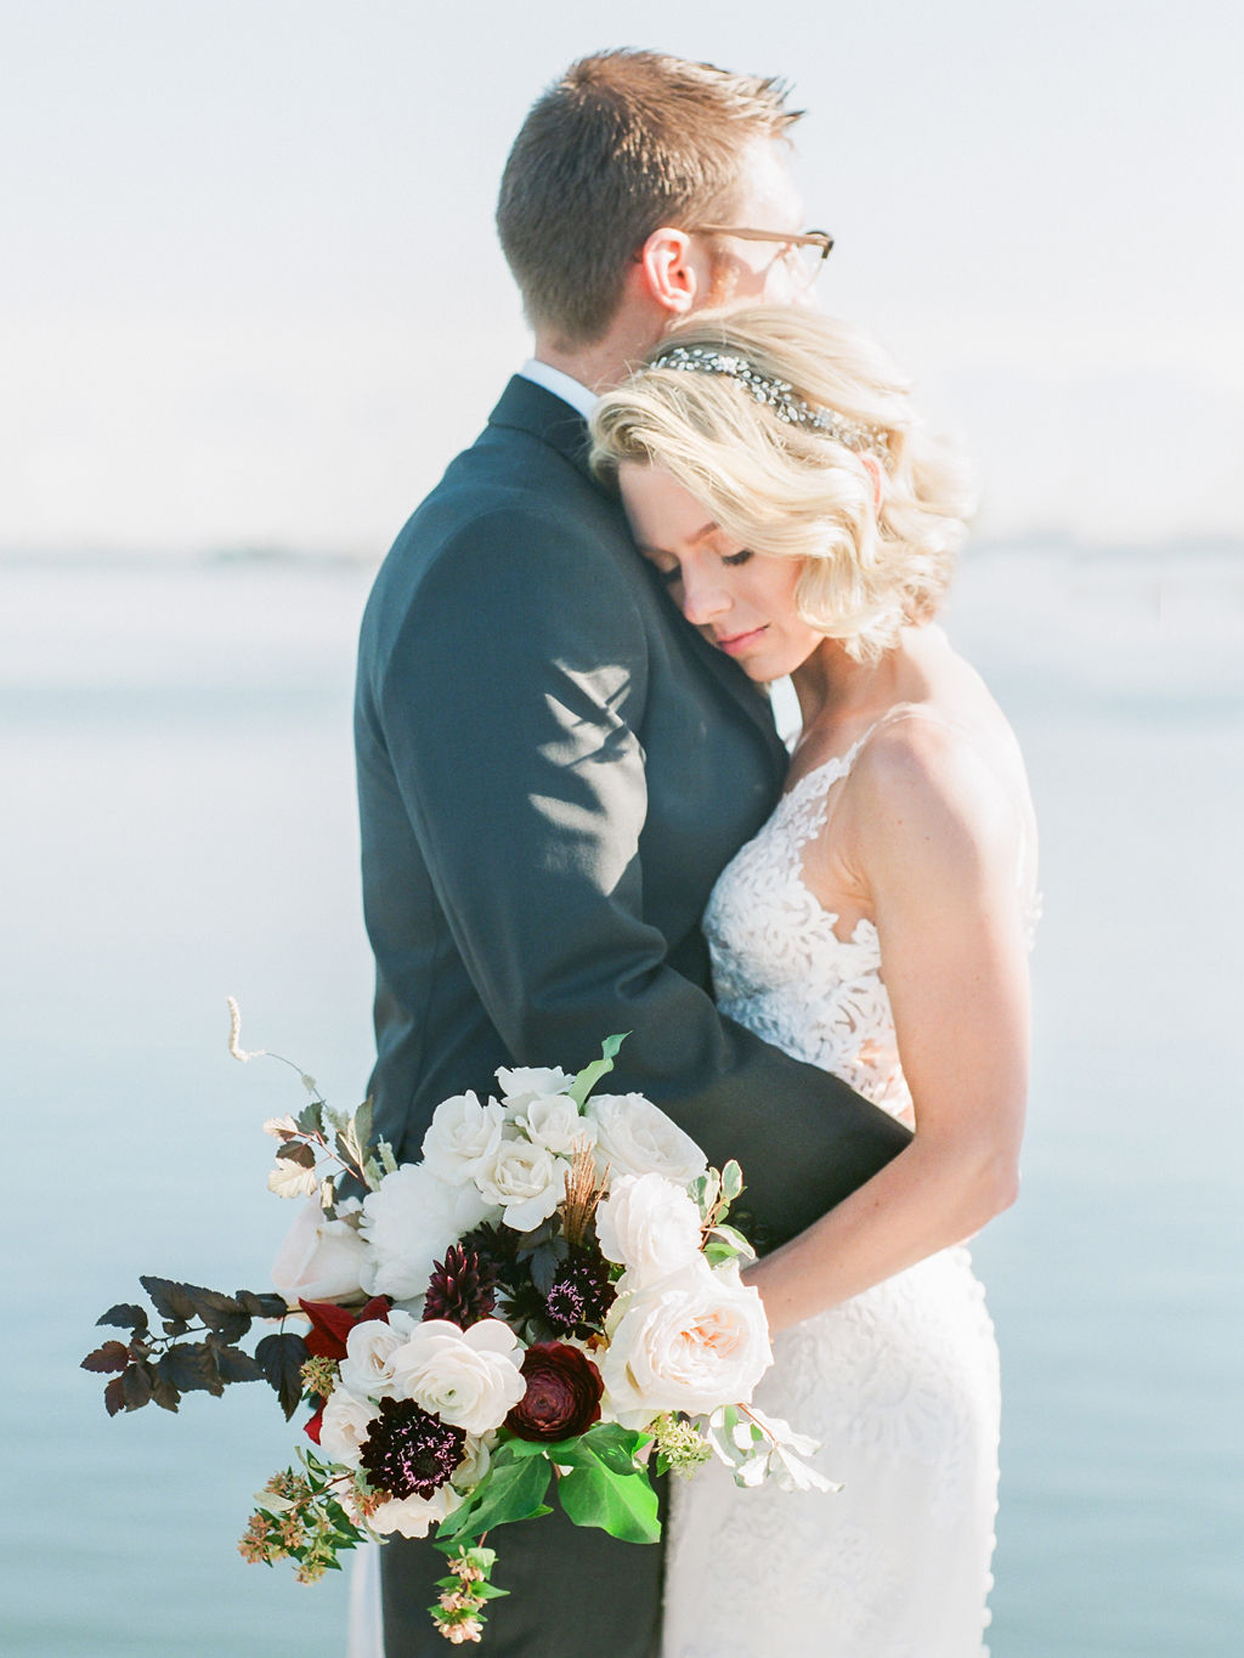 groom and bride embrace holding flower bouquet